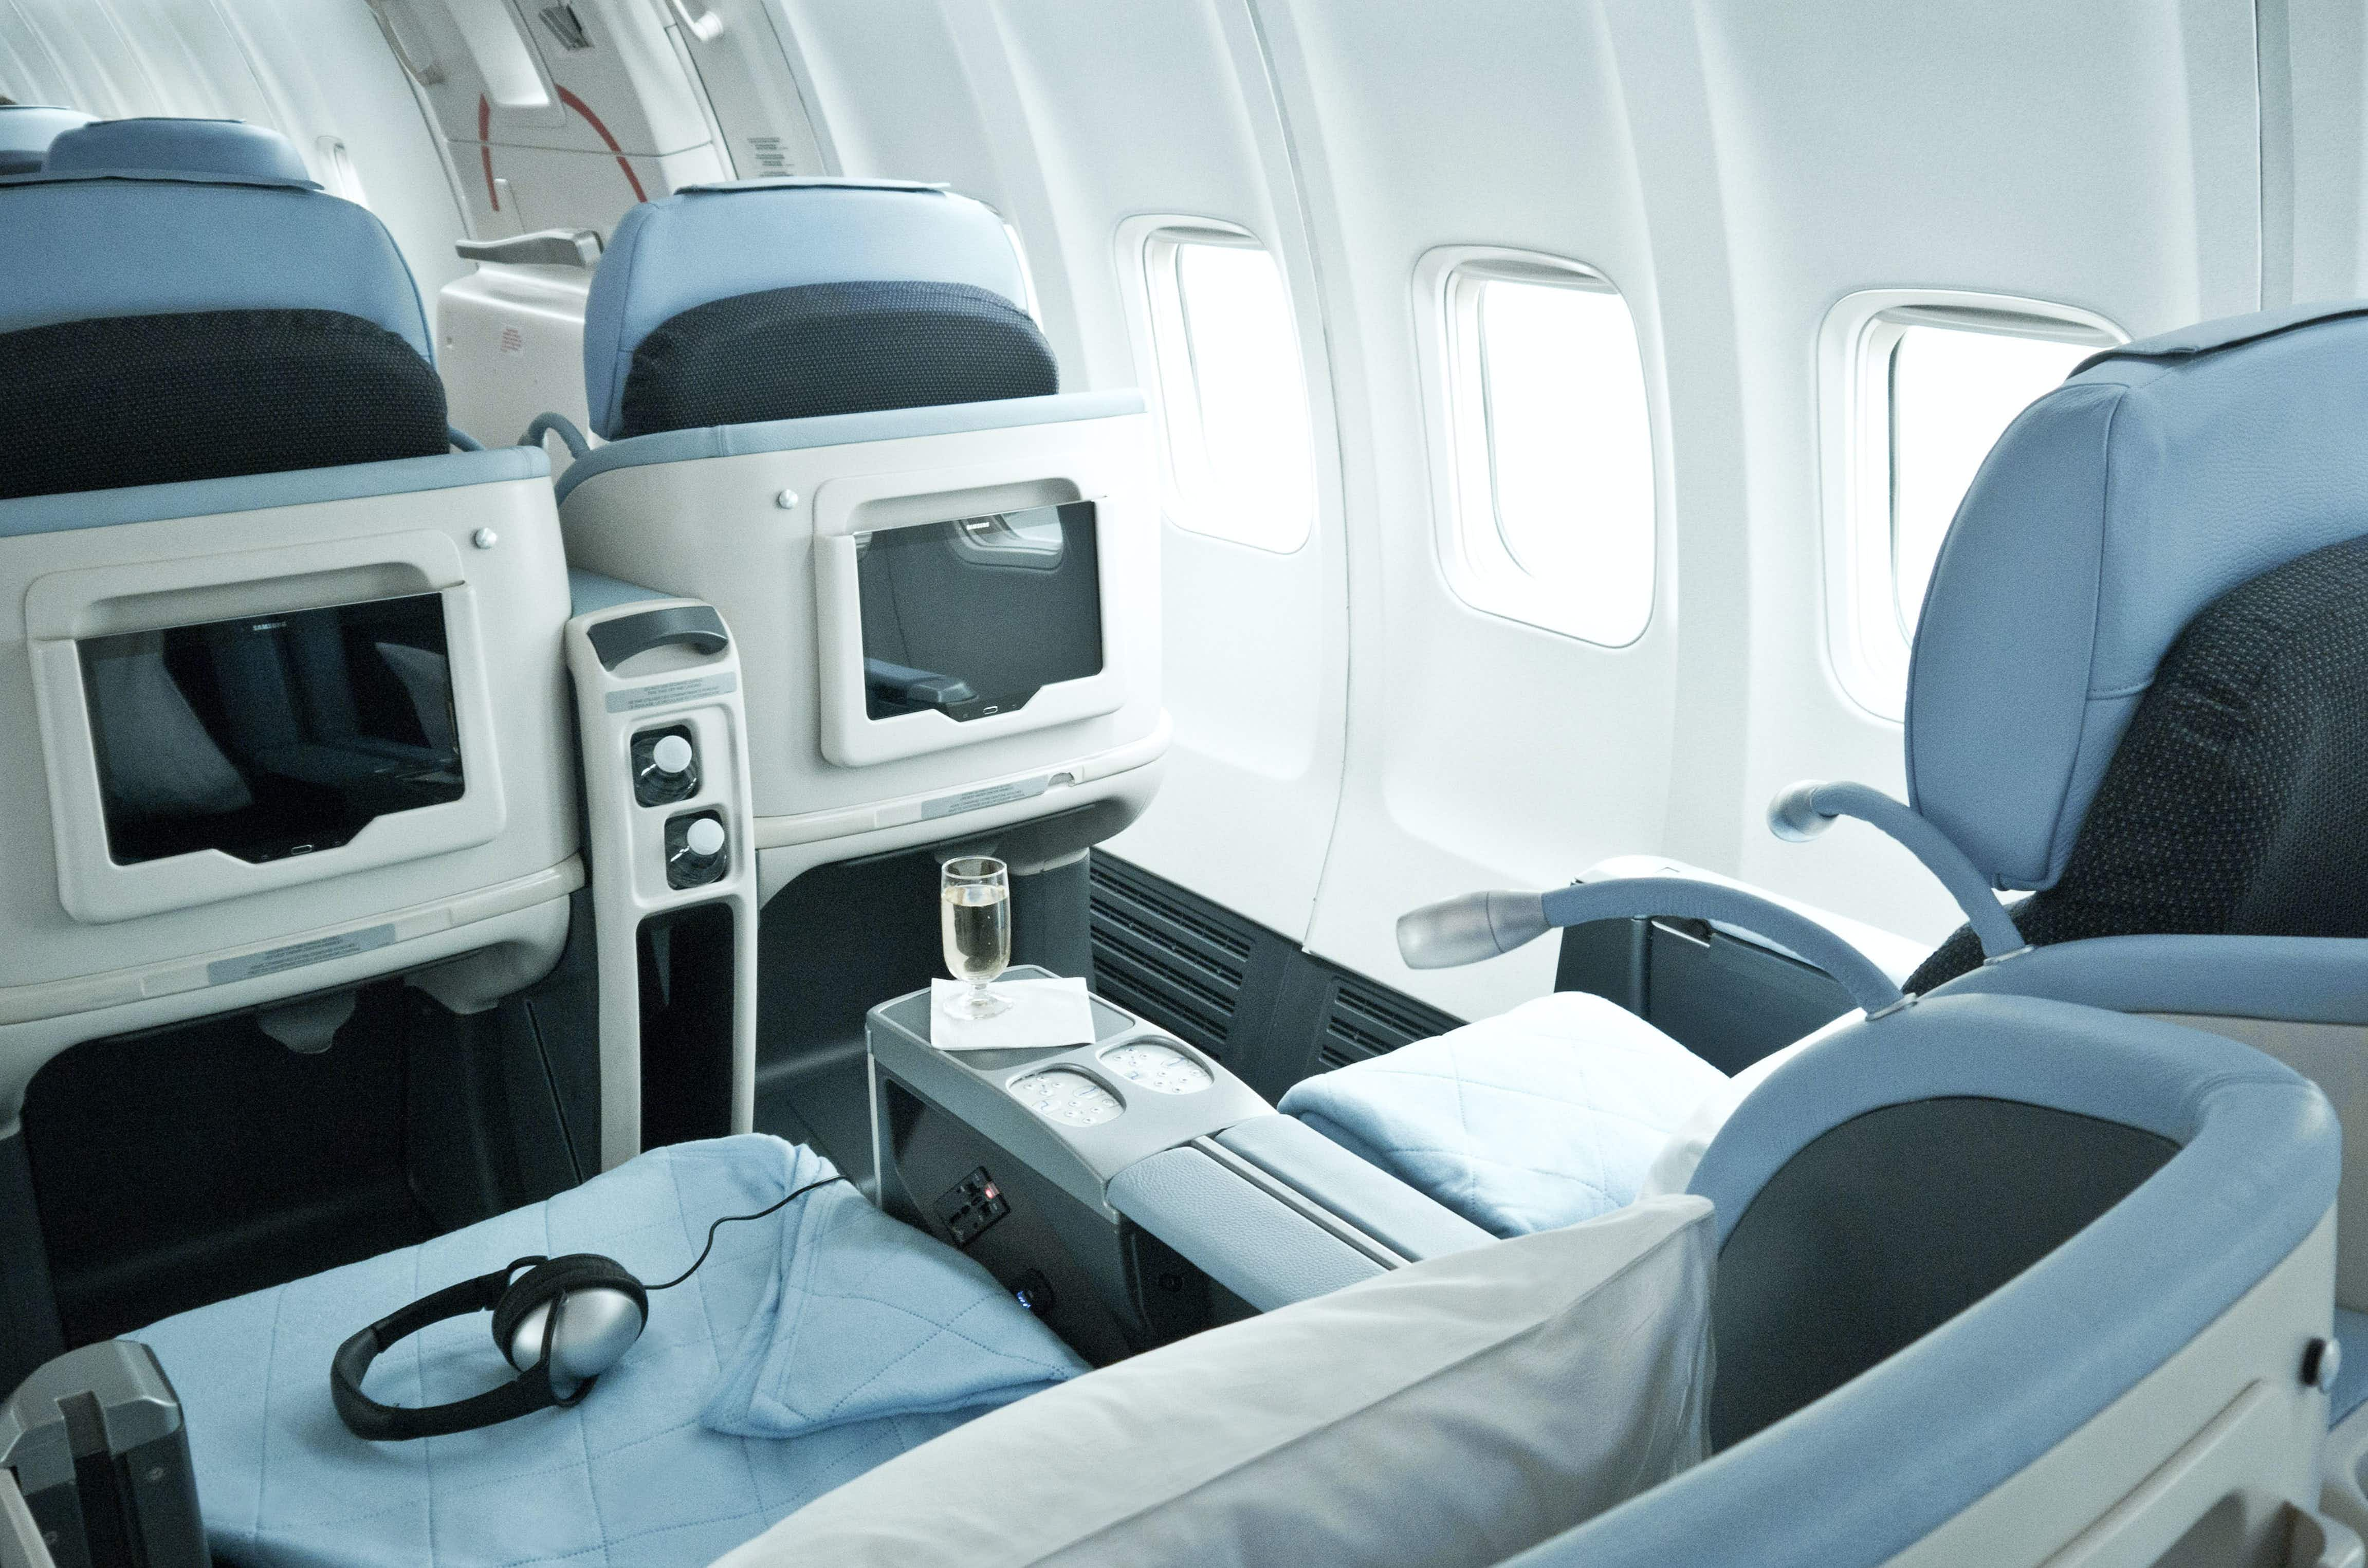 Unlimited business class flights between Paris and New York, yours for $40,000